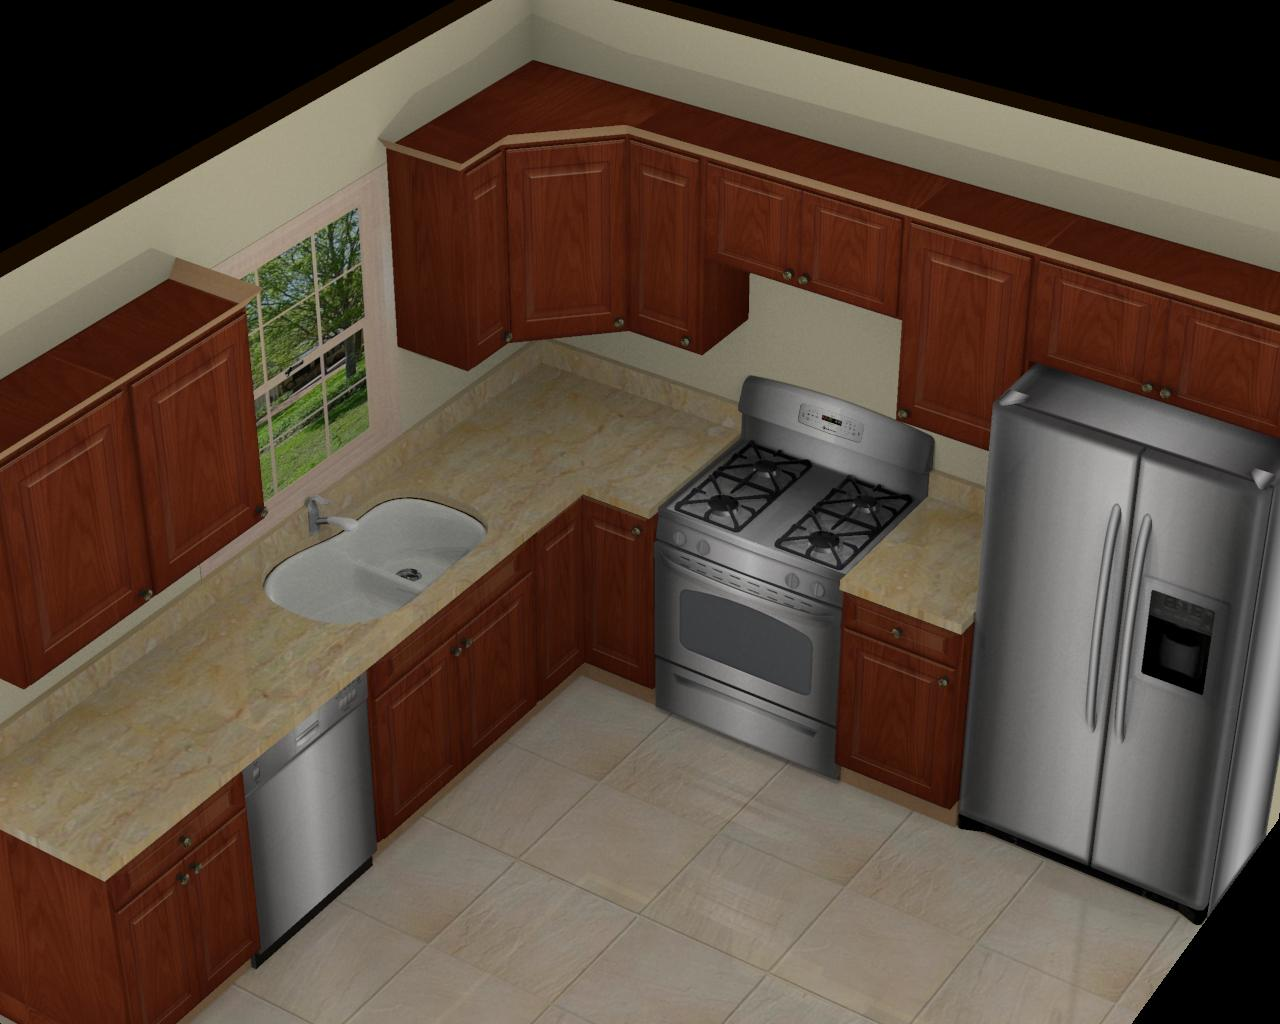 Foundation dezin decor 3d kitchen model design for Kitchen model ideas